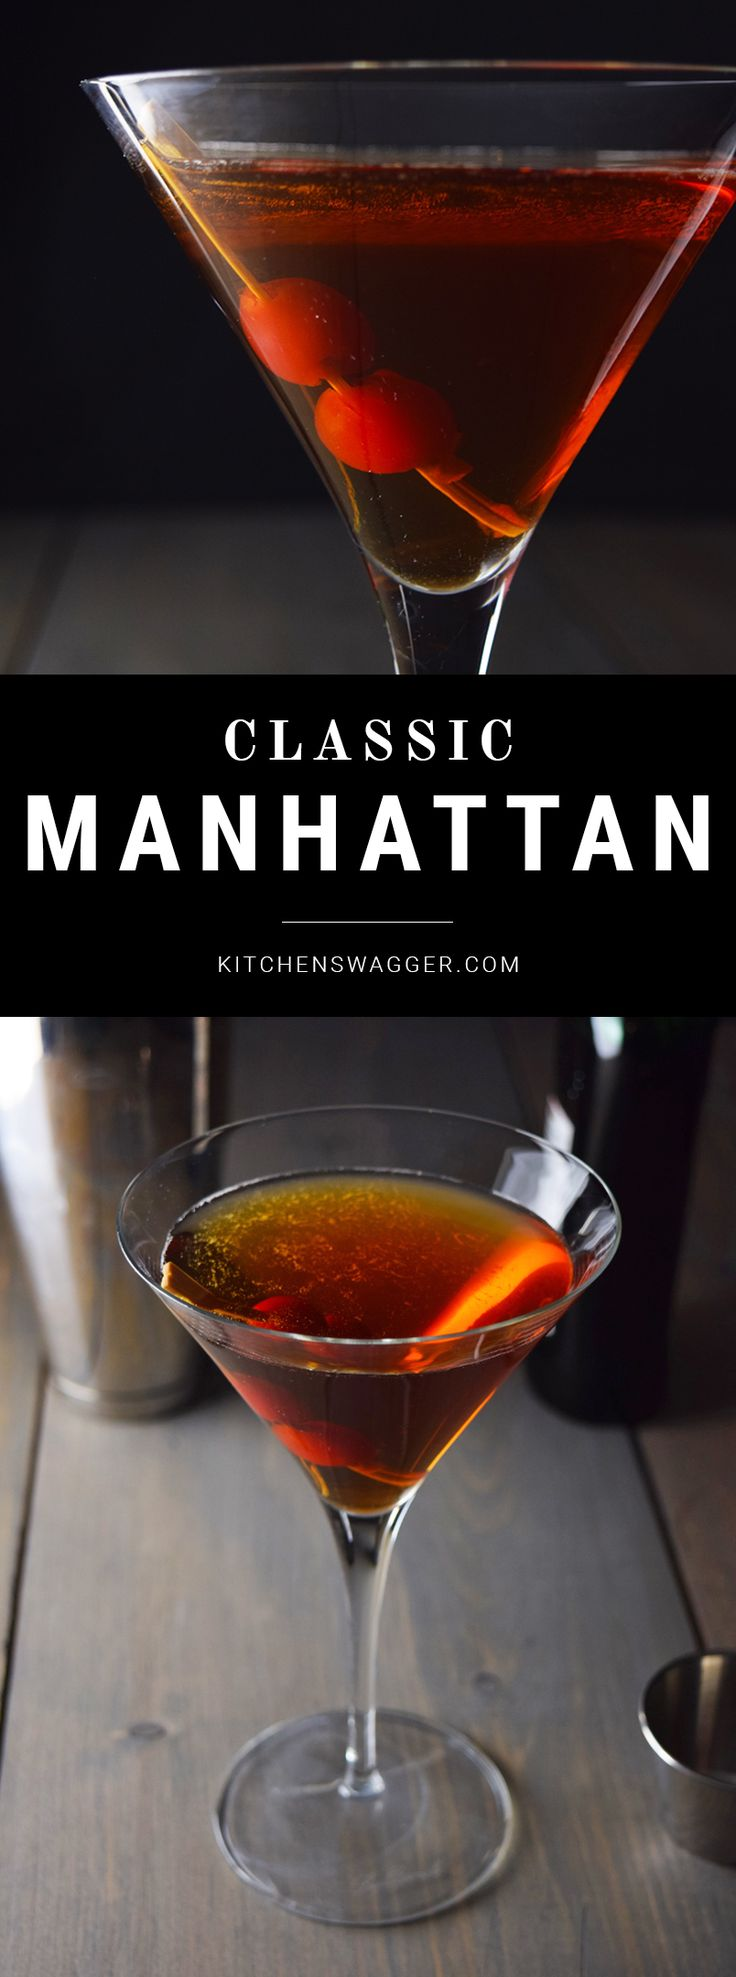 Classic Manhattan cocktail made with bourbon, bitters, and sweet vermouth.